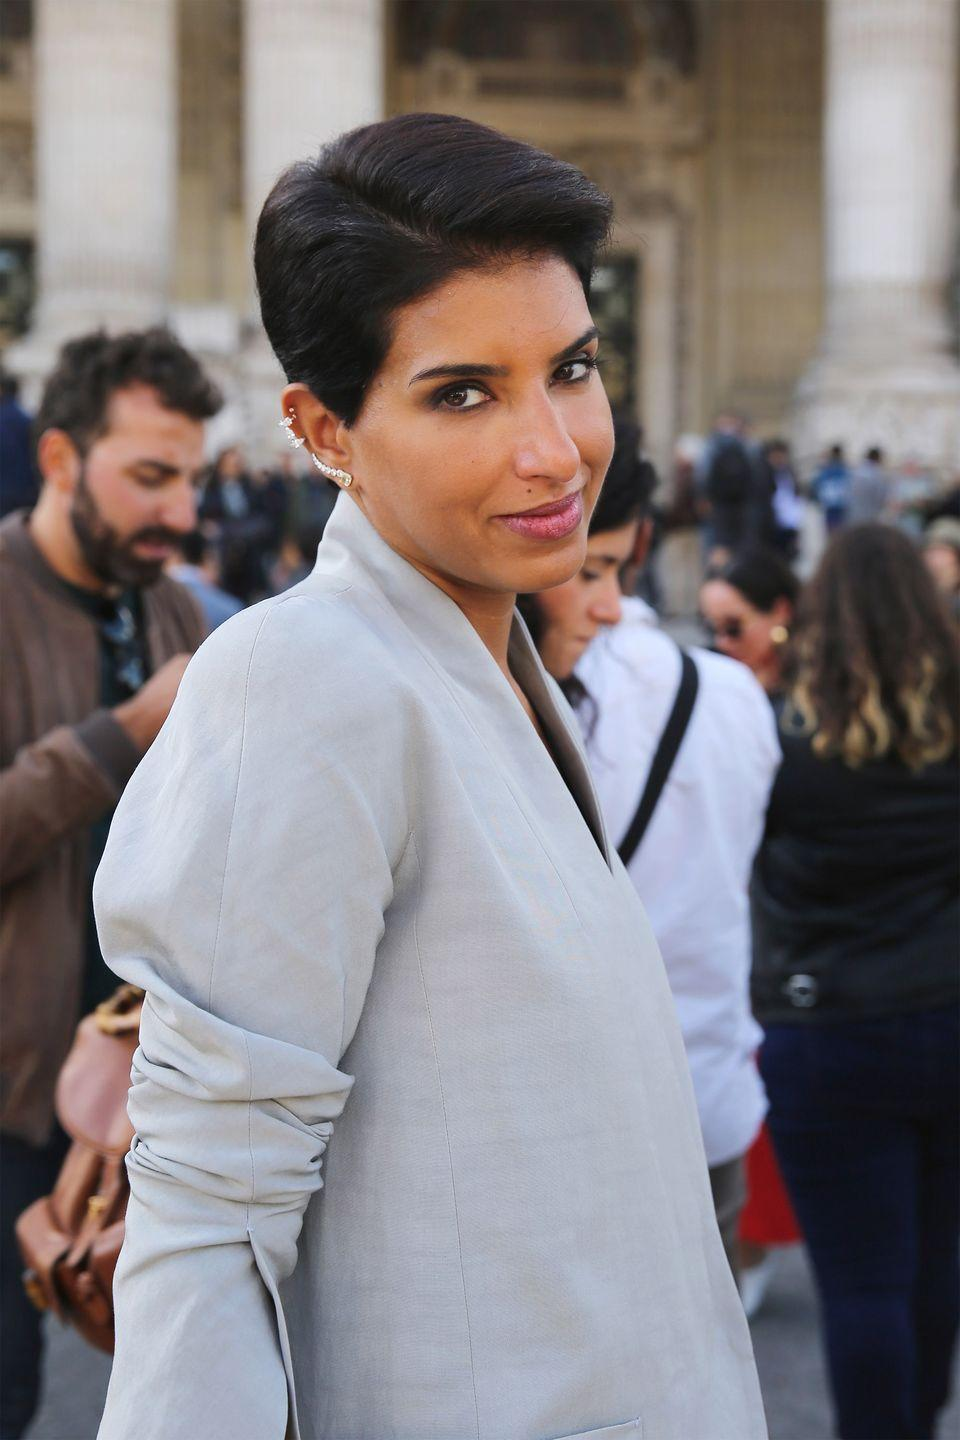 "<p>Born in California, the 42-year-old Saudi princess is a fashion week veteran and the co-founder and director of D'NA, an exclusive Saudi Arabian-based boutique that has made waves across the Middle East and beyond. In 2016, Abdulaziz was named the first-ever editor-in-chief of <em>Vogue Arabia</em>, which debuted its print edition in March 2017 with <a href=""https://www.buzzfeed.com/ikrd/assalamualaikum"" rel=""nofollow noopener"" target=""_blank"" data-ylk=""slk:Gigi Hadid wearing a hijab on the cover"" class=""link rapid-noclick-resp"">Gigi Hadid wearing a hijab on the cover</a>. One month later, with only two editions under her belt, Abdulaziz was fired from the publication. ""I refused to compromise when I felt the publisher's approach conflicted with the values which underpin our readers and the role of the editor-in-chief in meeting those values in a truly authentic way,"" she told <em><a href=""https://www.businessoffashion.com/articles/news-analysis/deena-aljuhani-abdulaziz-exits-vogue-arabia"" rel=""nofollow noopener"" target=""_blank"" data-ylk=""slk:BoF"" class=""link rapid-noclick-resp"">BoF</a></em>.</p>"